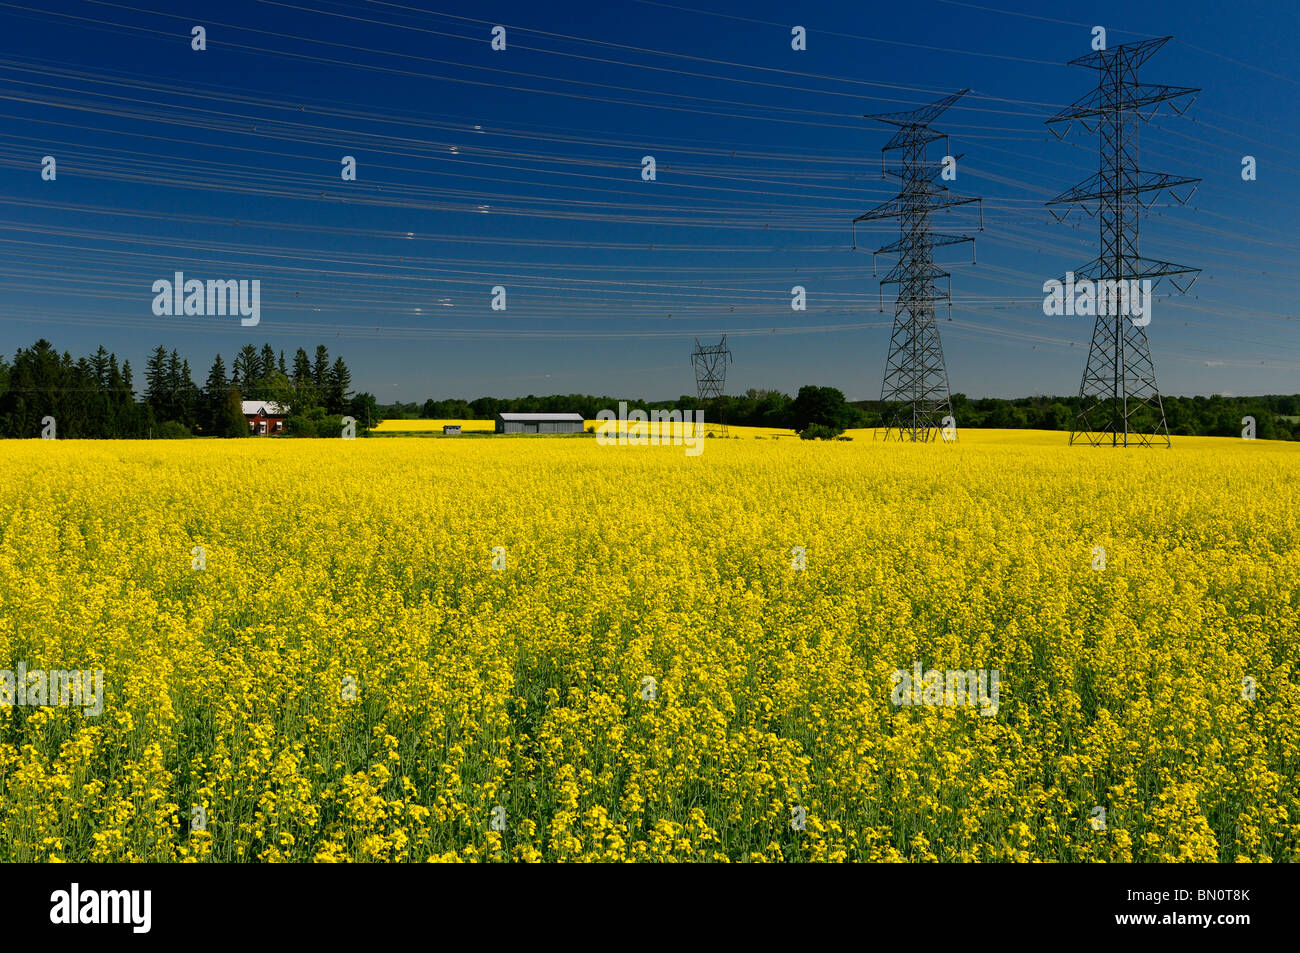 Field of yellow rapeseed crop with farmhouse and hydro towers against a blue sky Oak Ridges Moraine Ontario Stock Photo